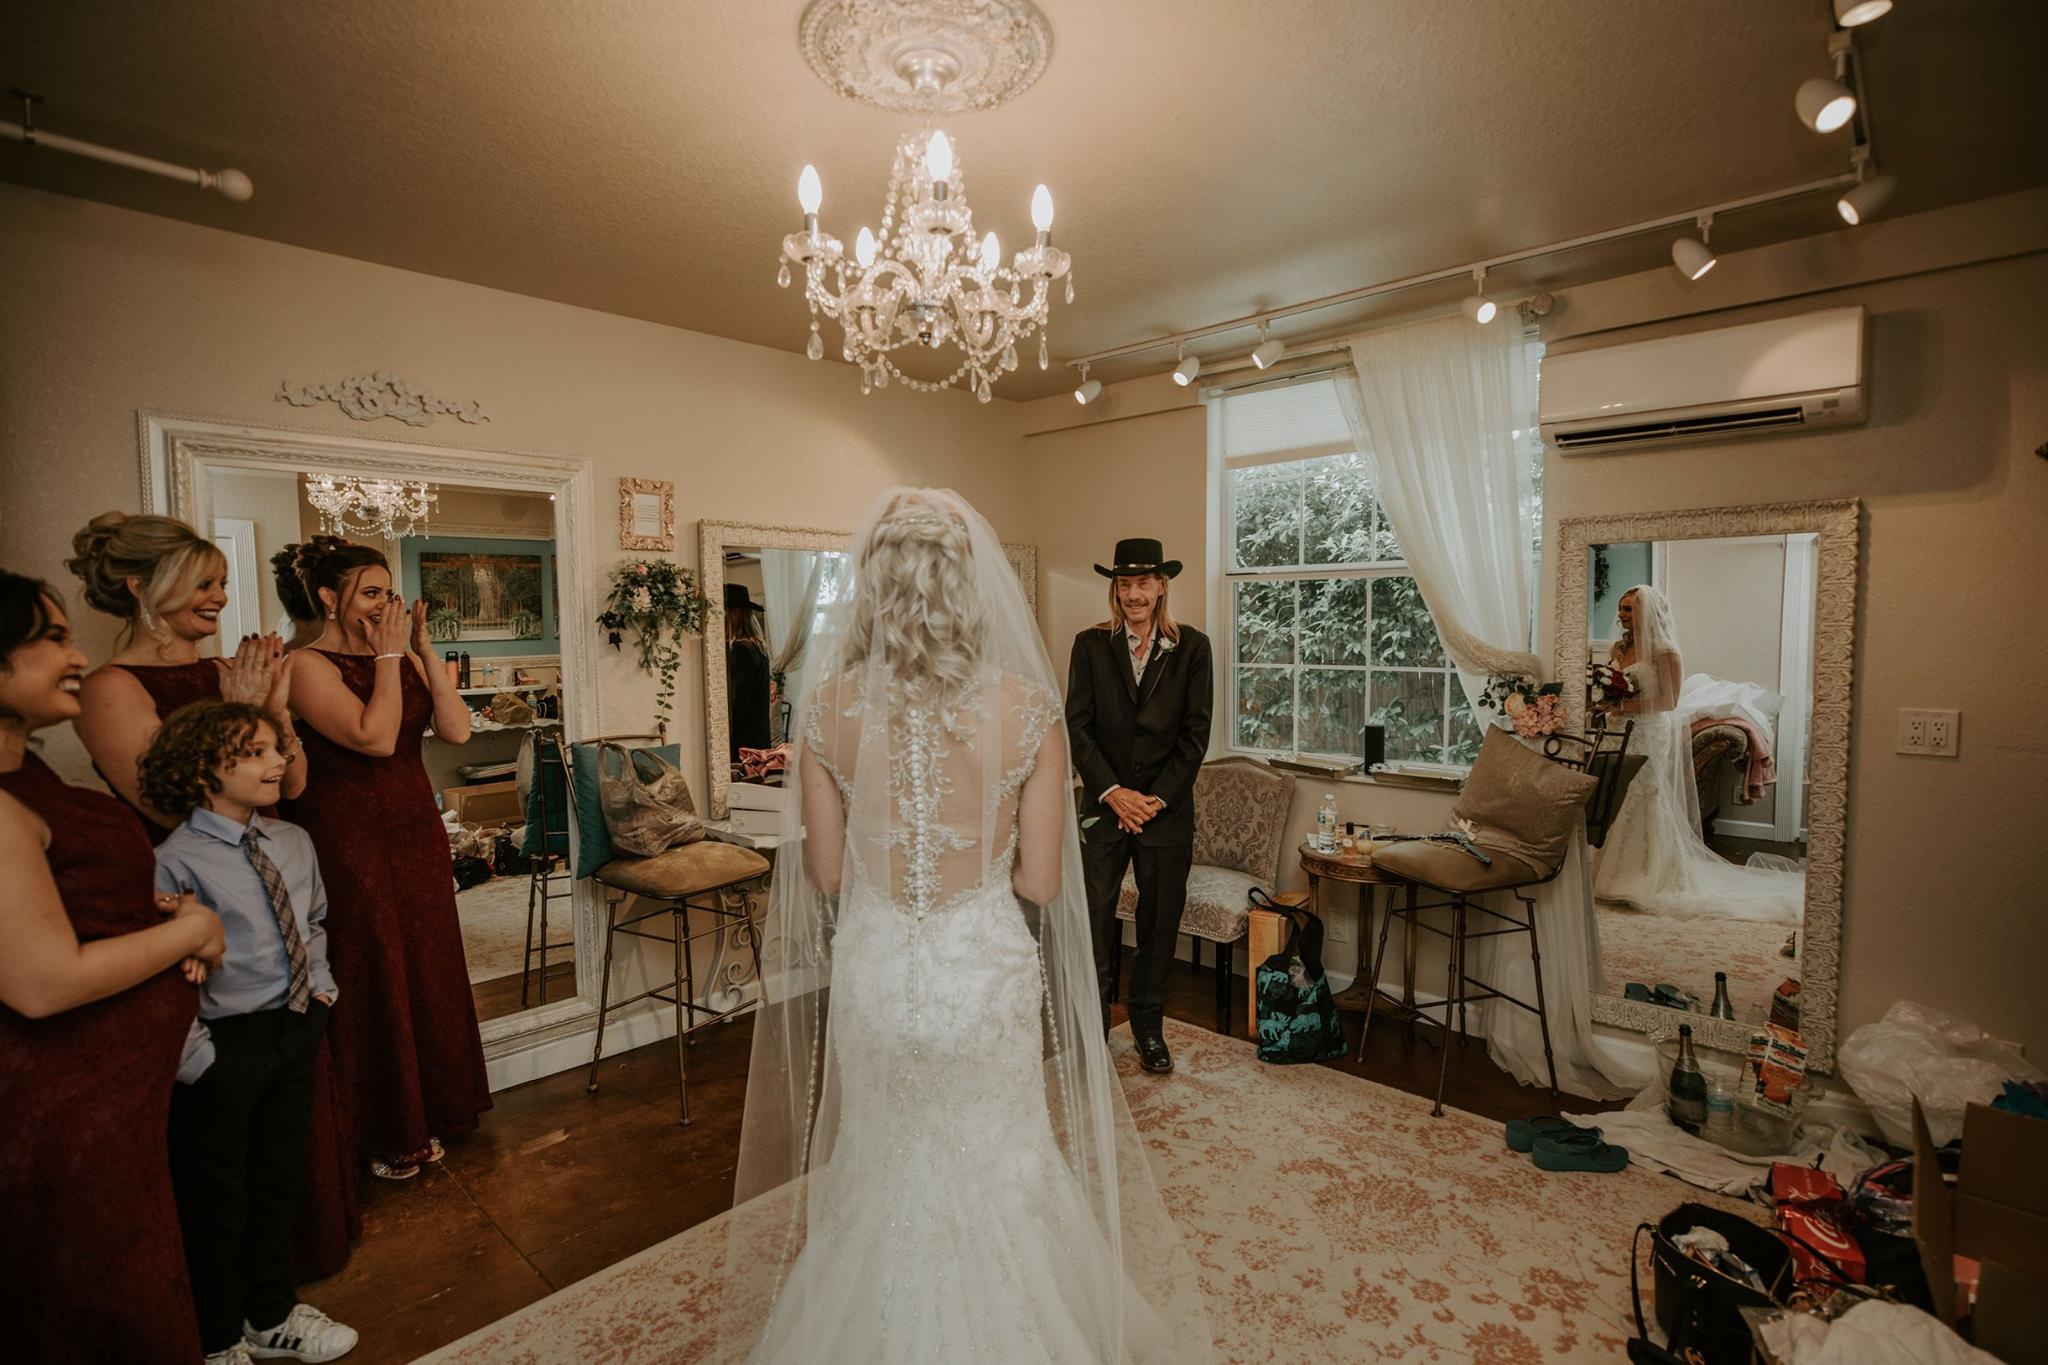 Janae and Billy wedding - Bakers Ranch - Declaration photography (14).jpg